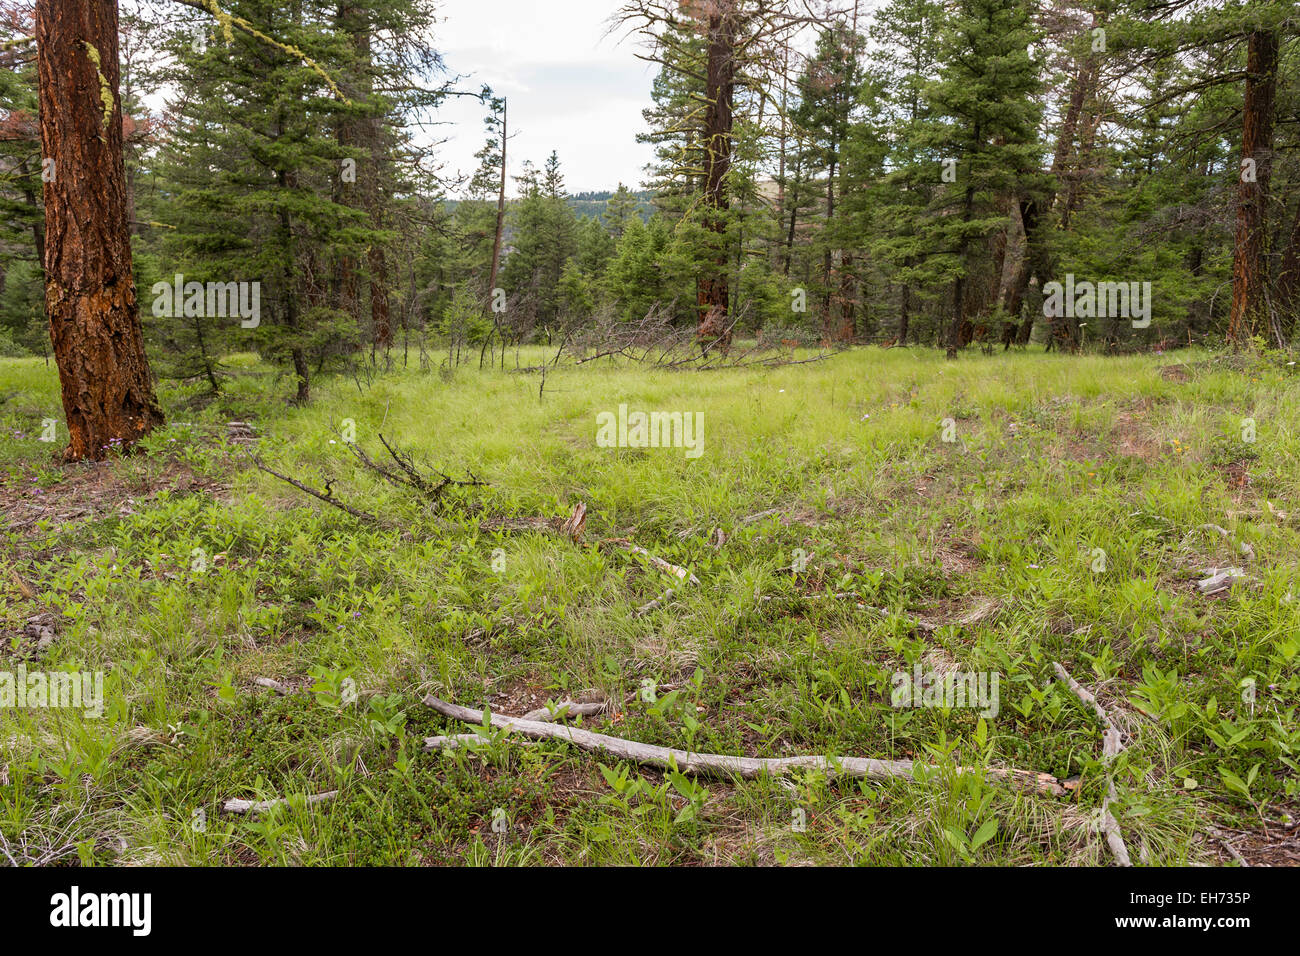 Clearing in boreal forest near Clinton, British Columbia, Canada. - Stock Image